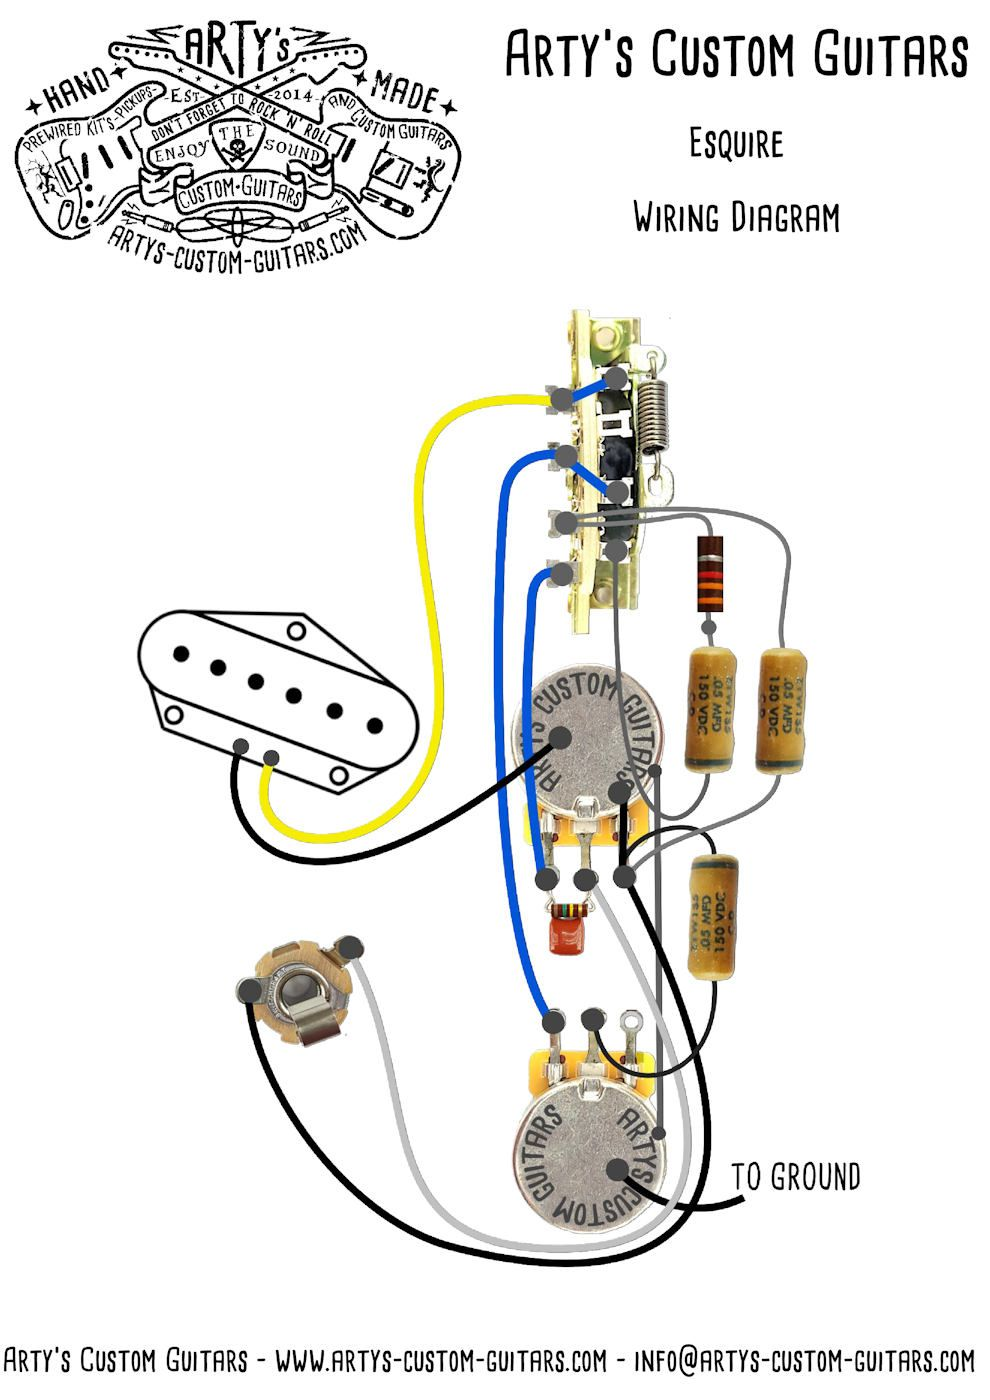 Wiring Diagram For Guitars from i.pinimg.com